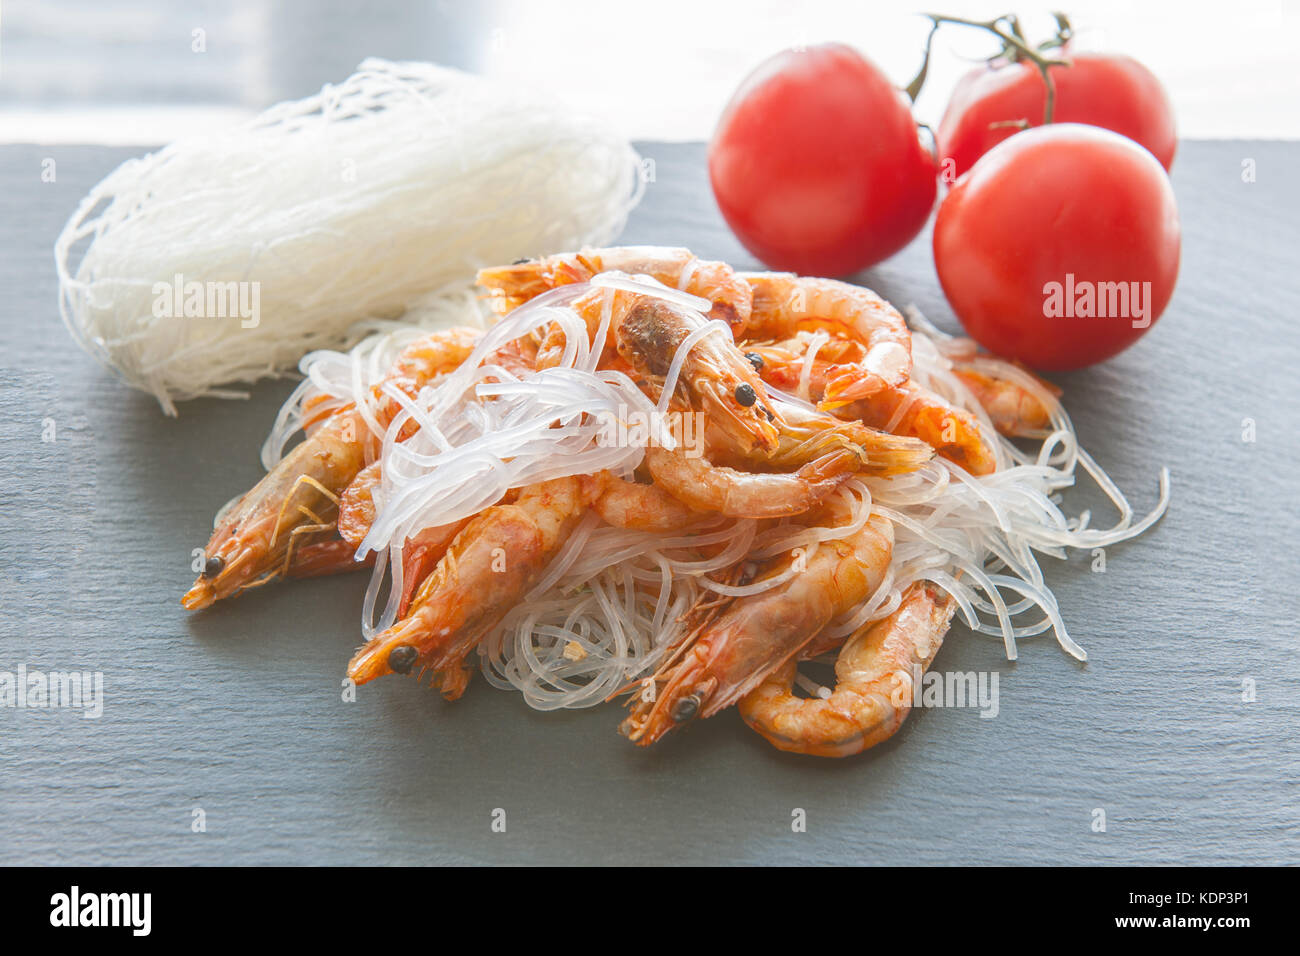 Rice Noodles Cellophane Boiled Shrimp On The Grill Spices And Stock Photo Alamy